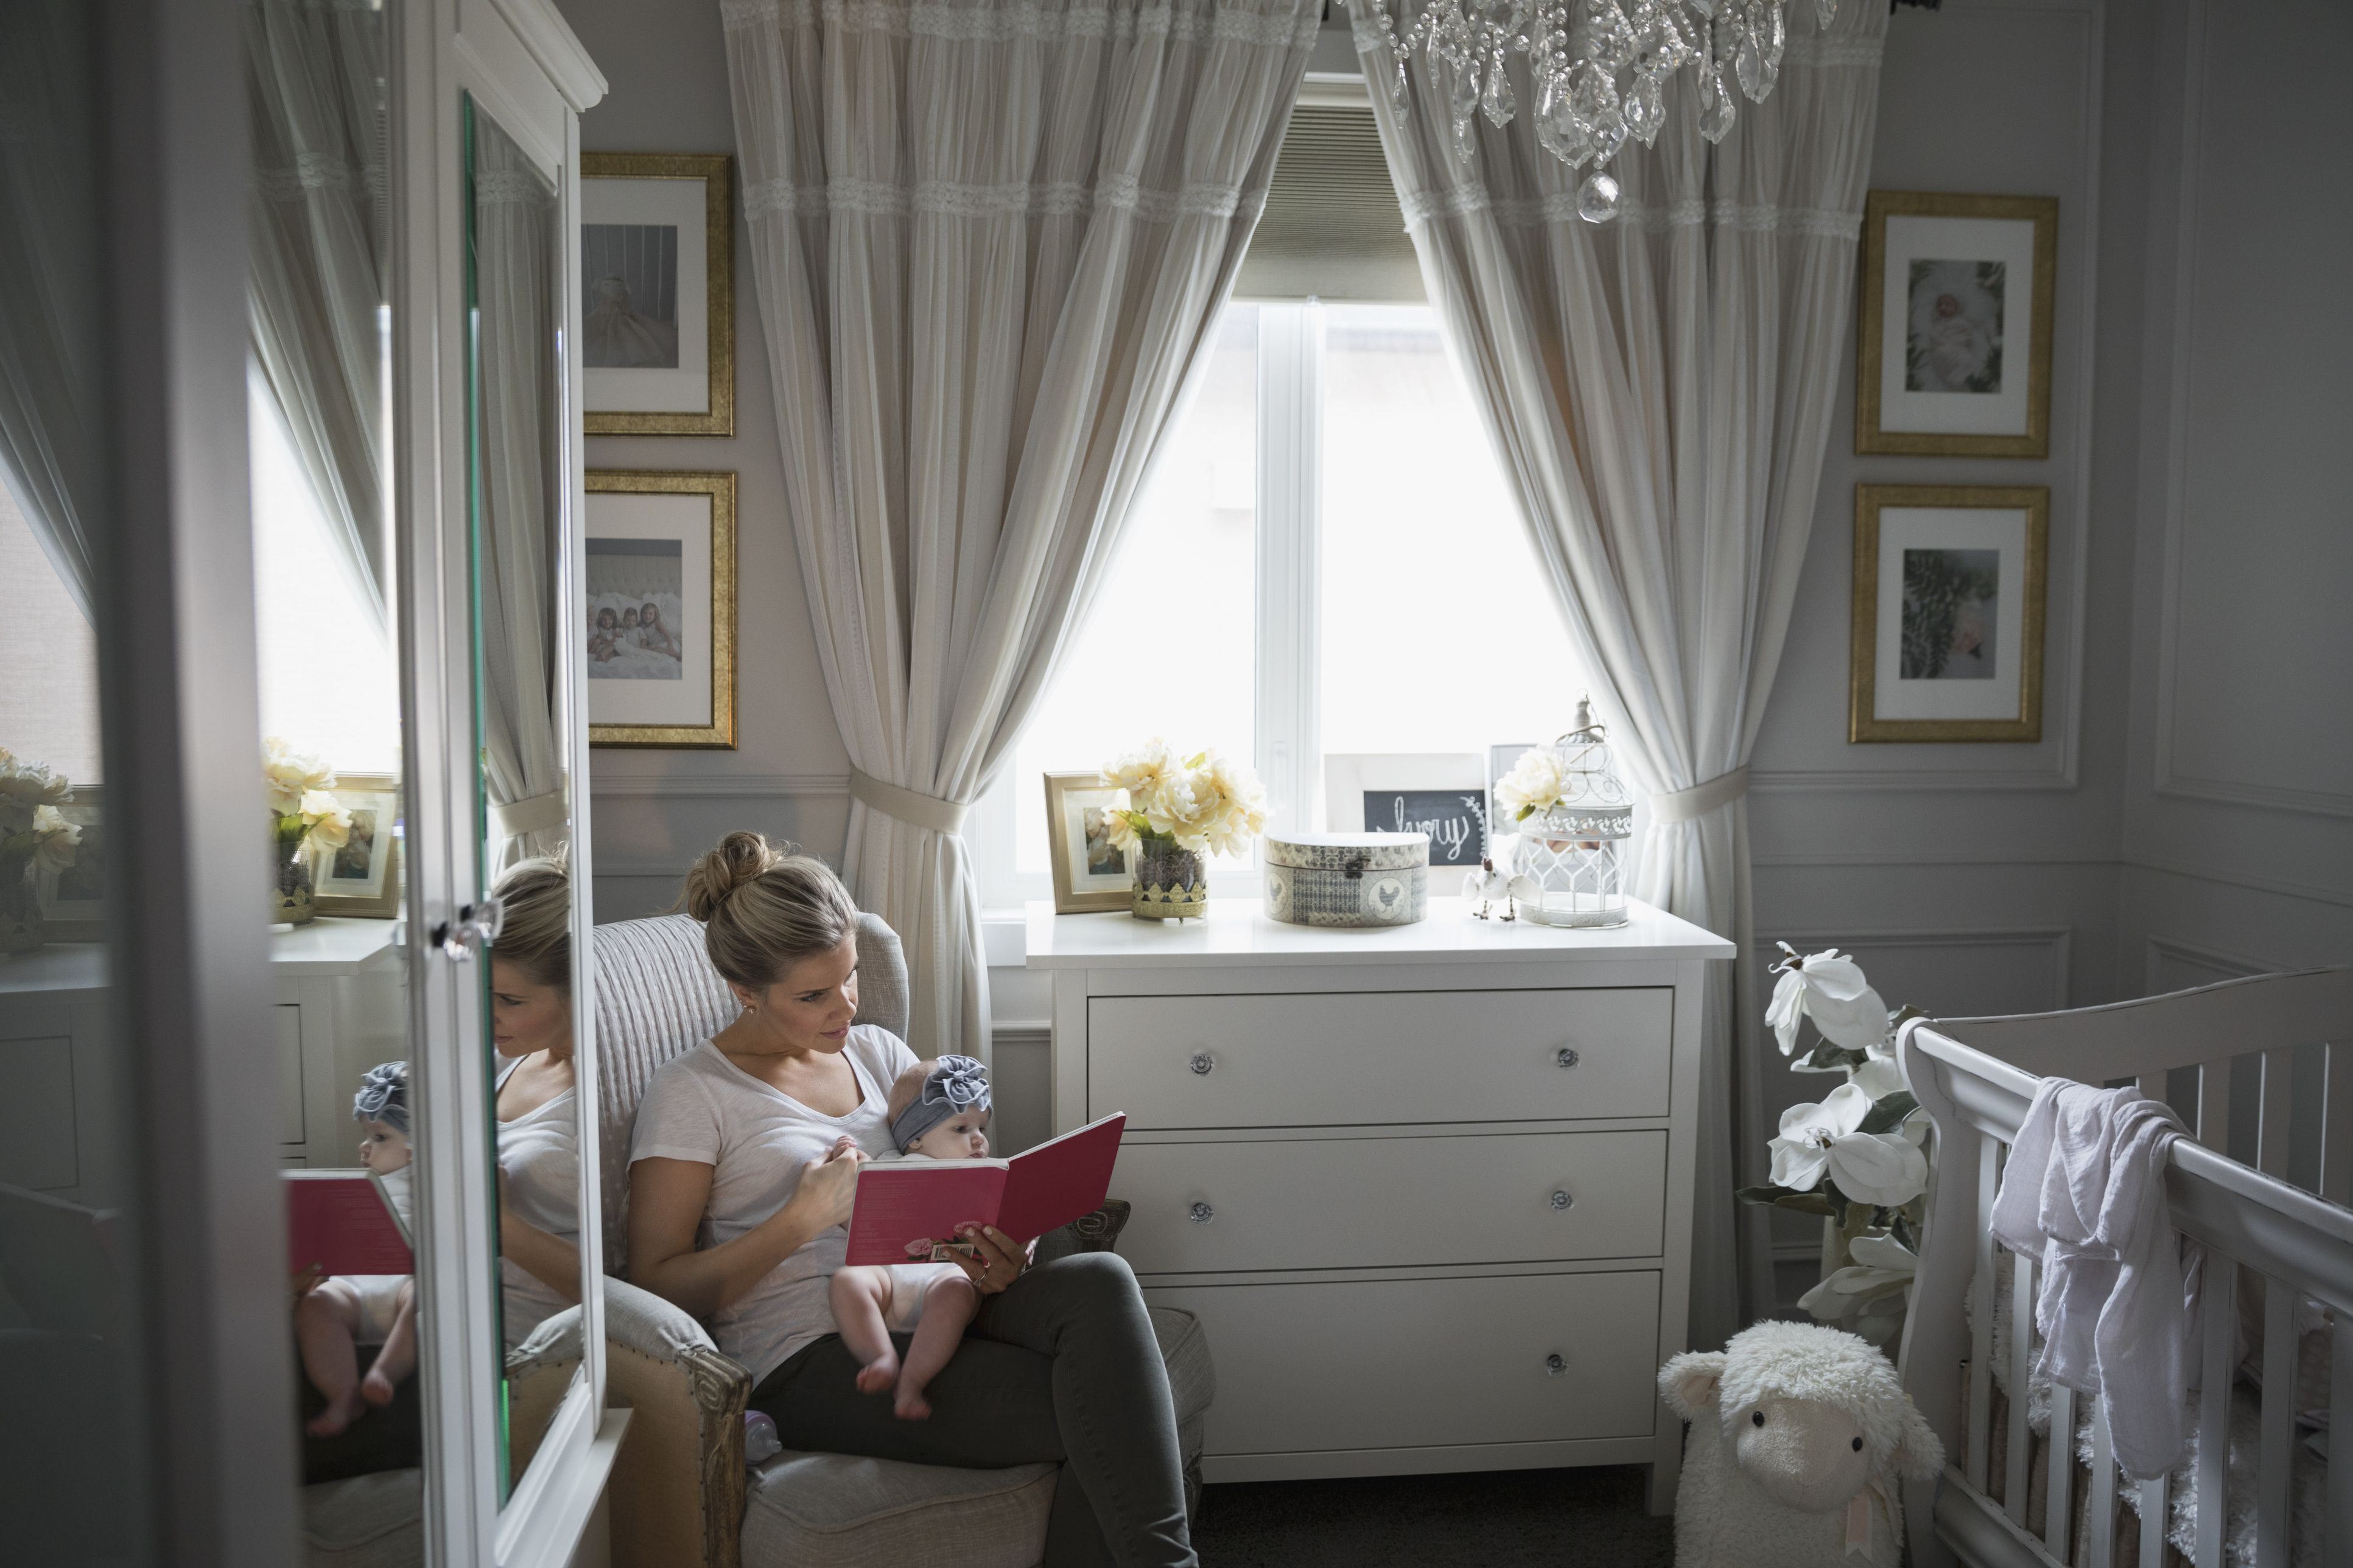 Basic Types of Windows Treatments for Bedrooms